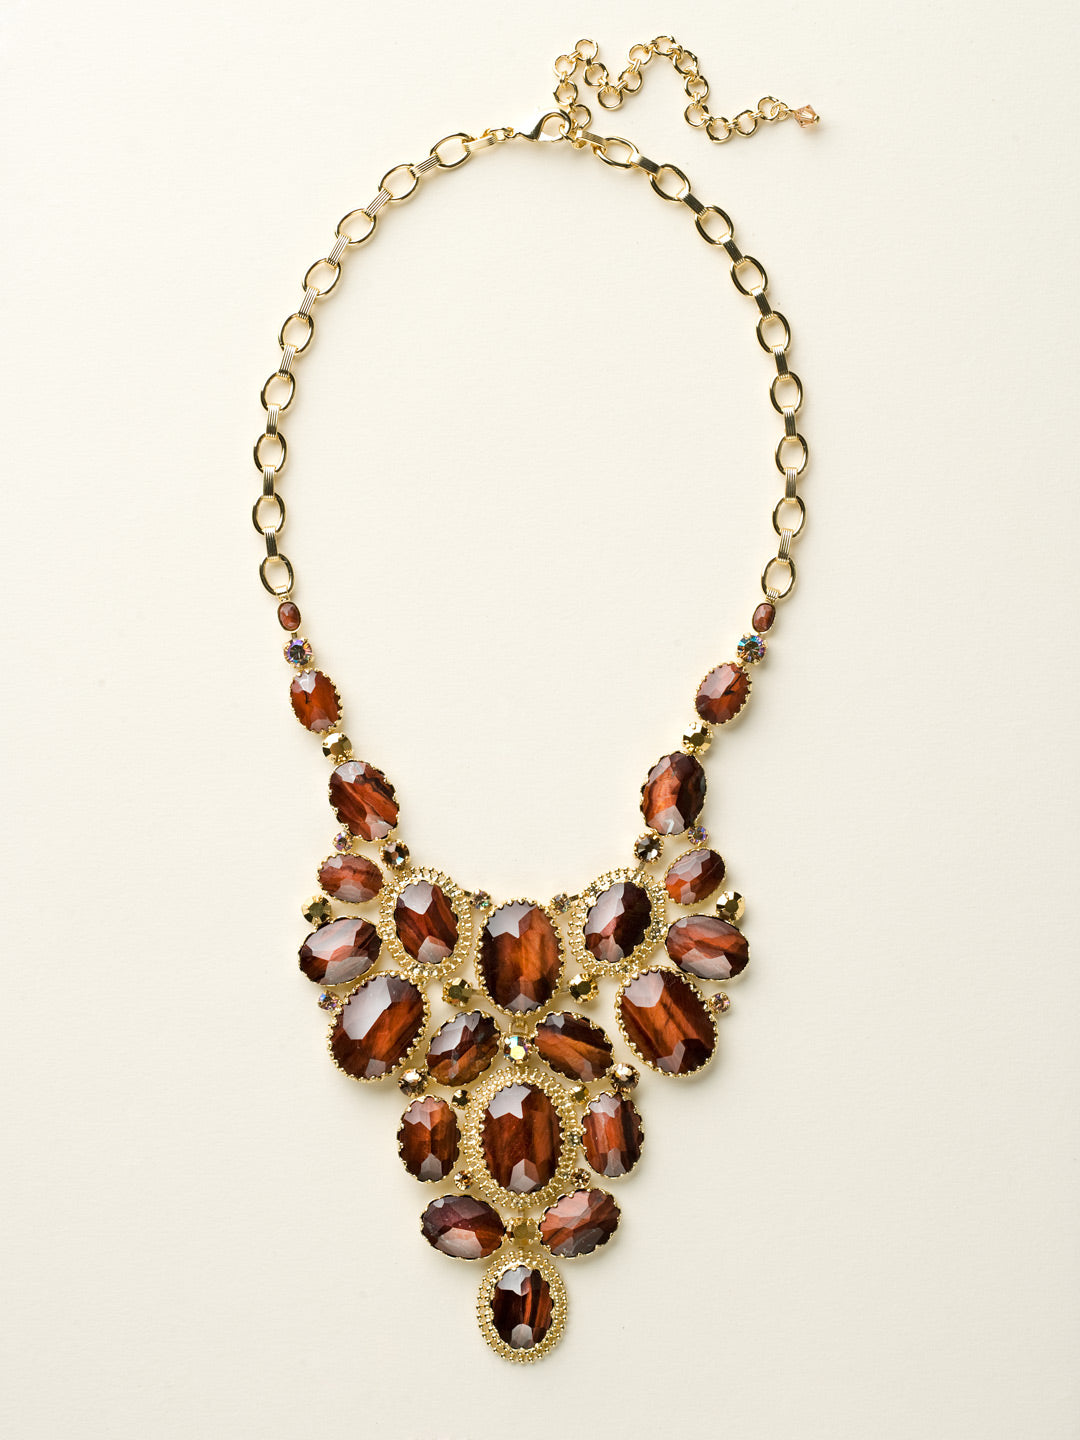 Cabochon Cluster Statement Necklace - NCU1BGGOL